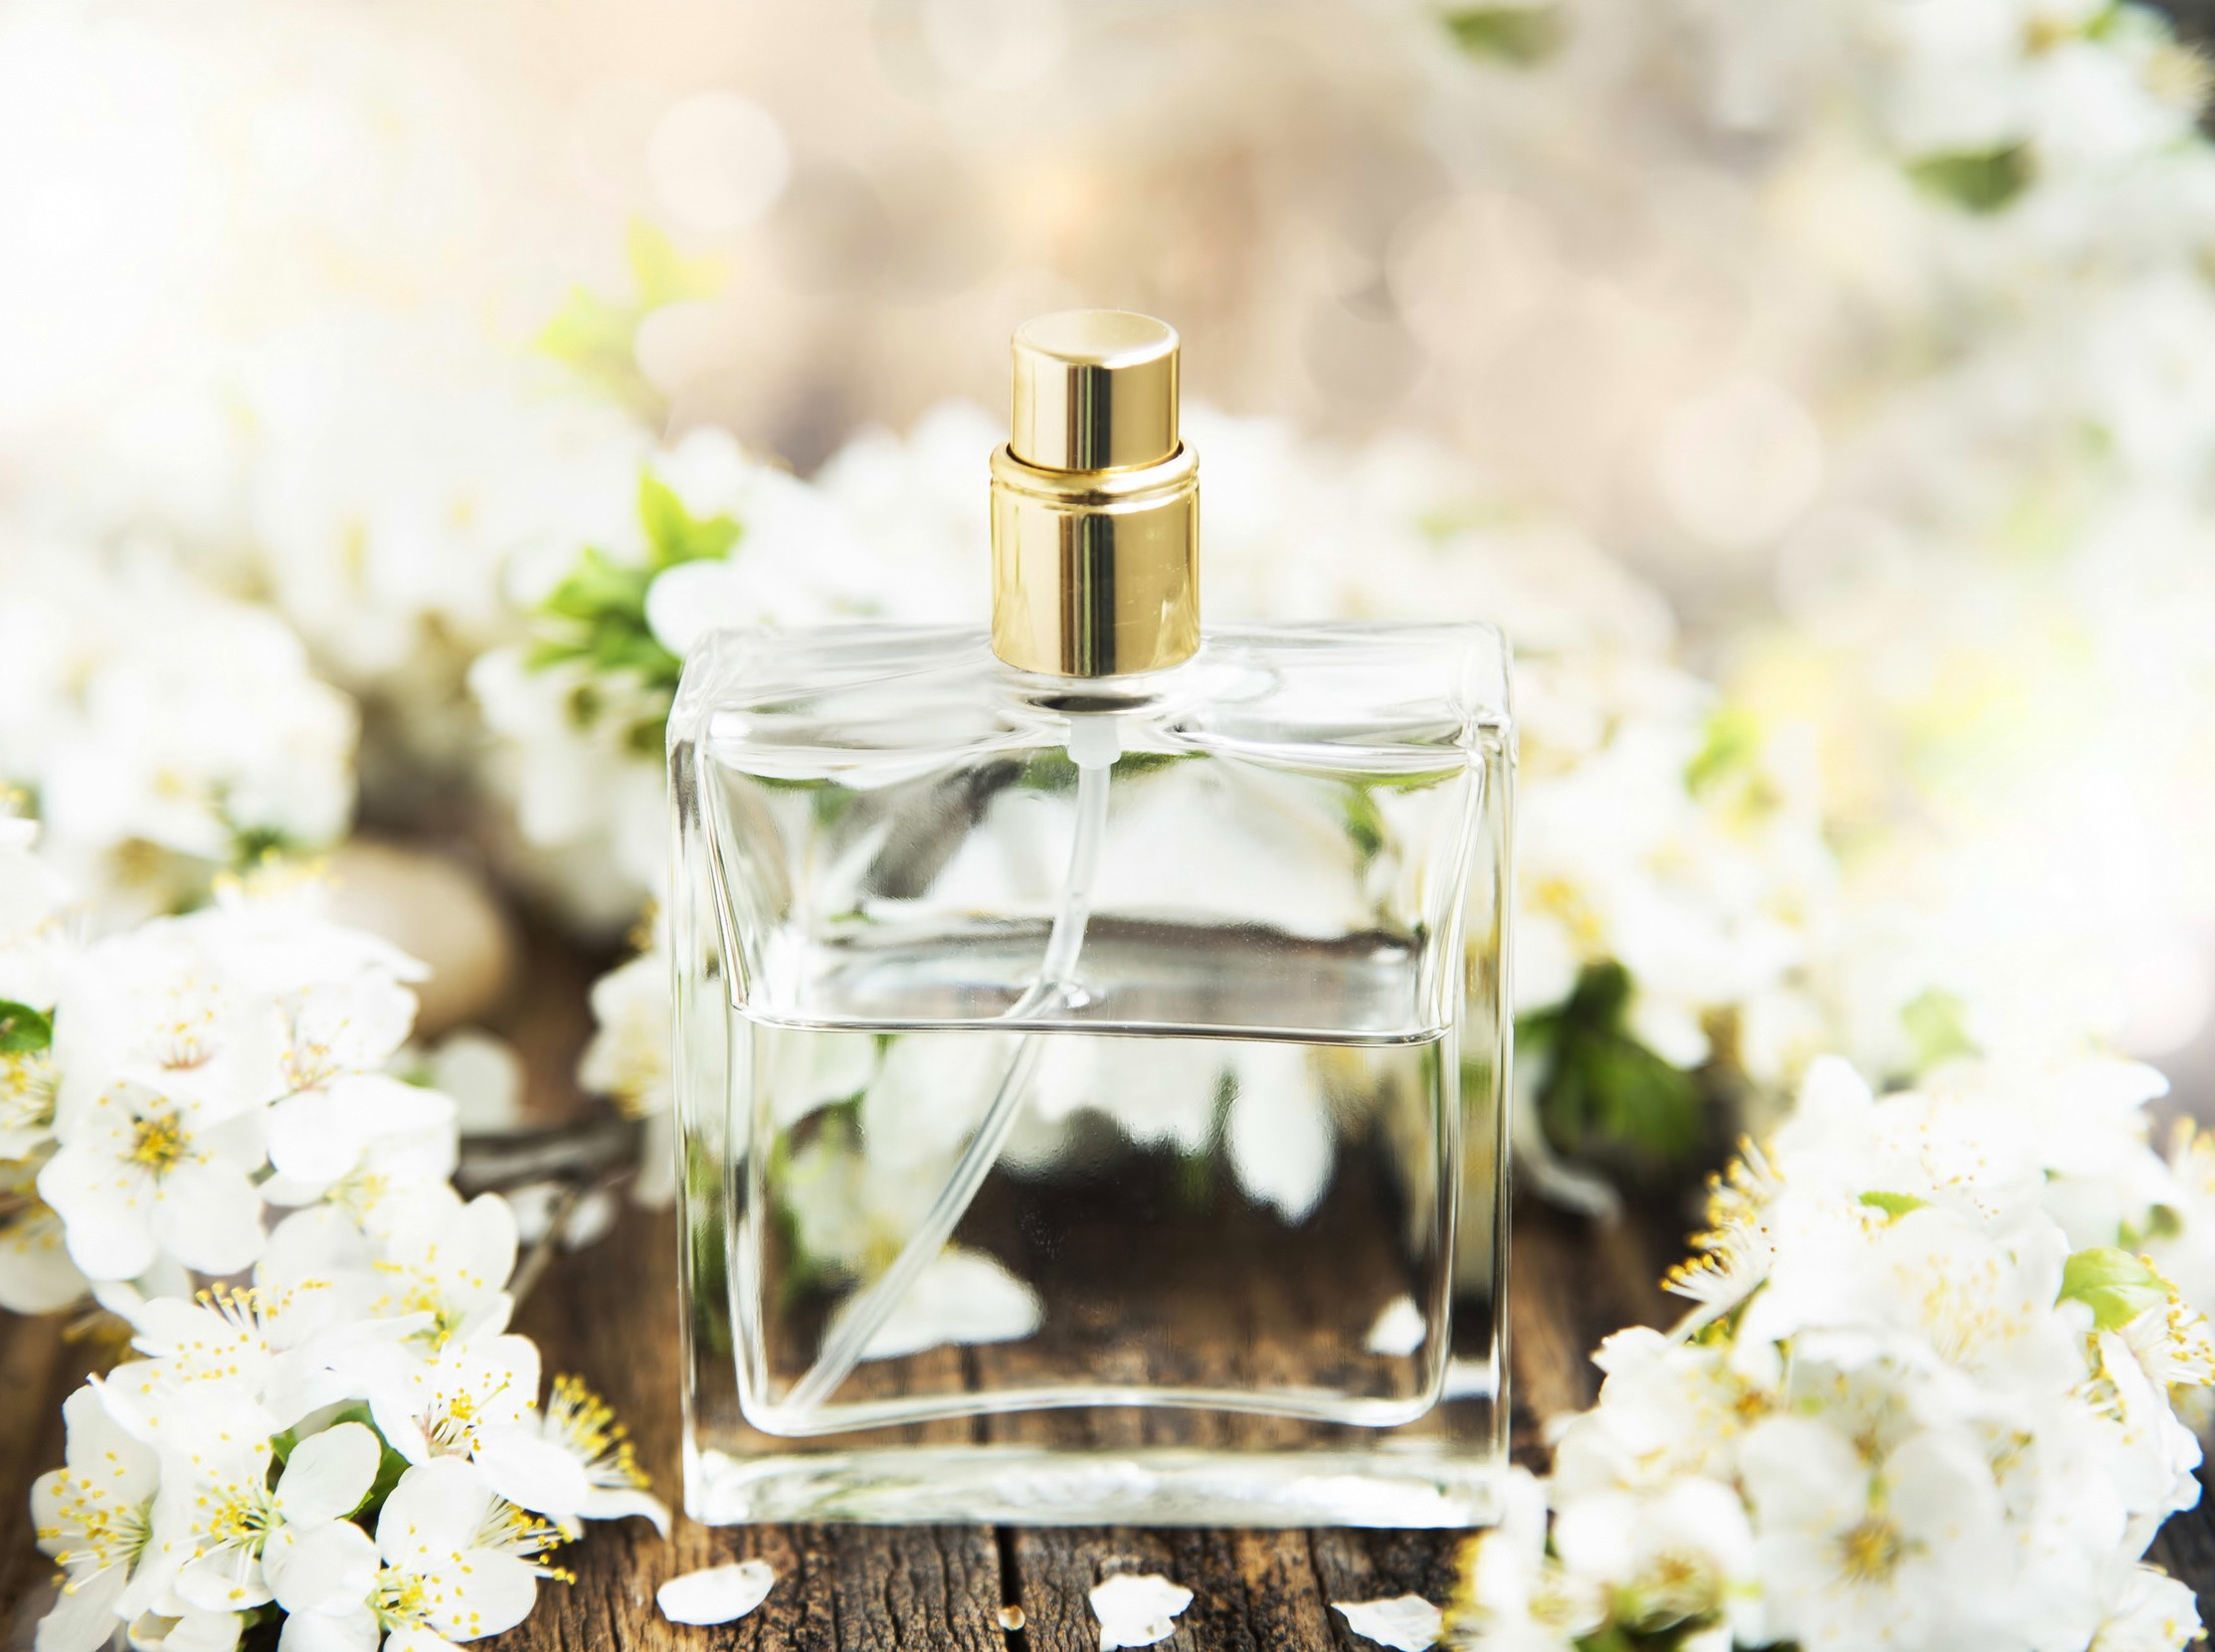 How To Find Your Signature Scent By Joyce Chua By Zalora Ph Thread By Zalora 1 Philippines Online Fashion Community